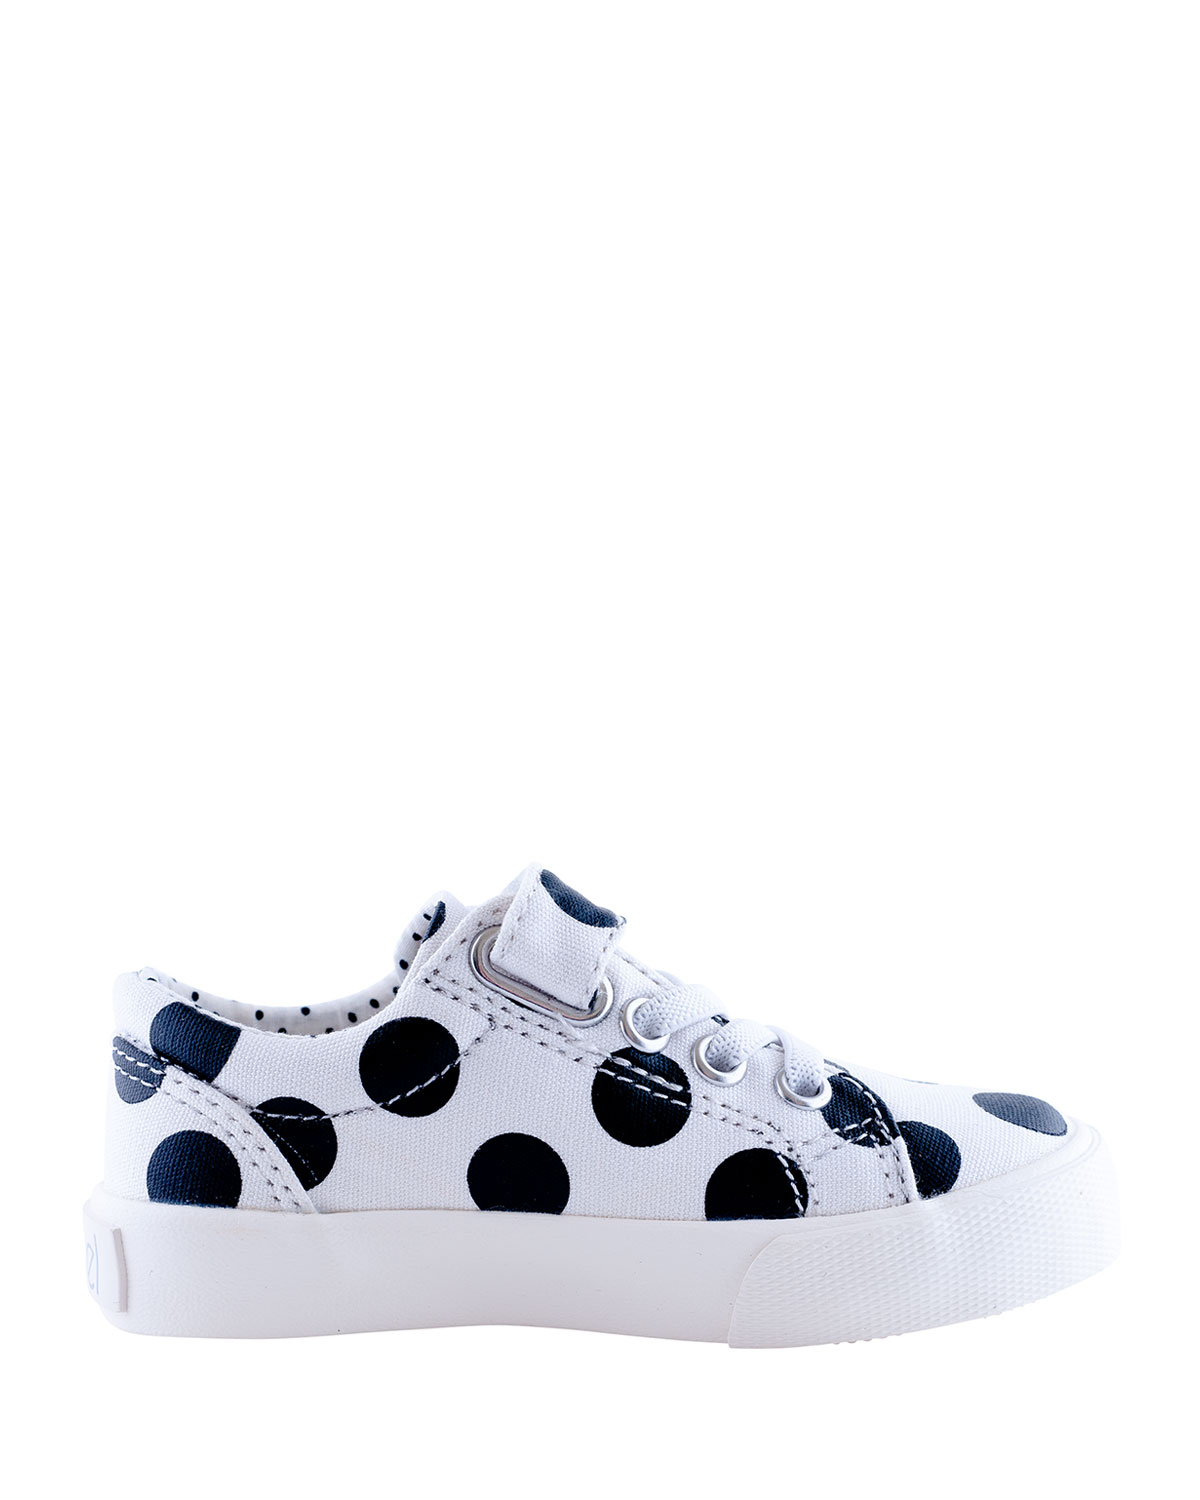 Grace Laminated Polka-Dotted Grip Strap Sneakers